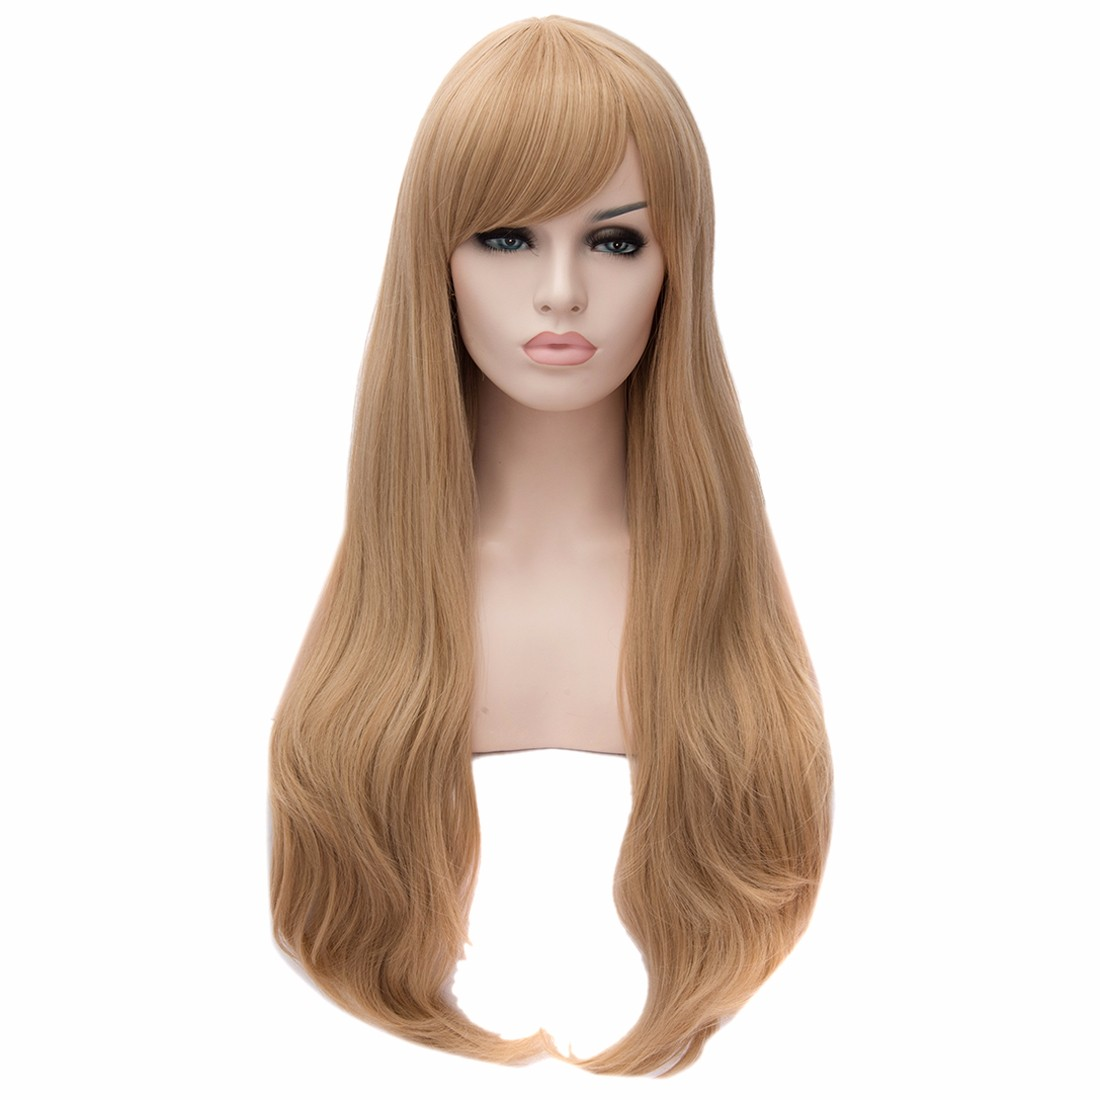 Light Golden Side Fringe Hairstyle Large Wavy Curly Women Long Party Wigs<br><br>Aliexpress